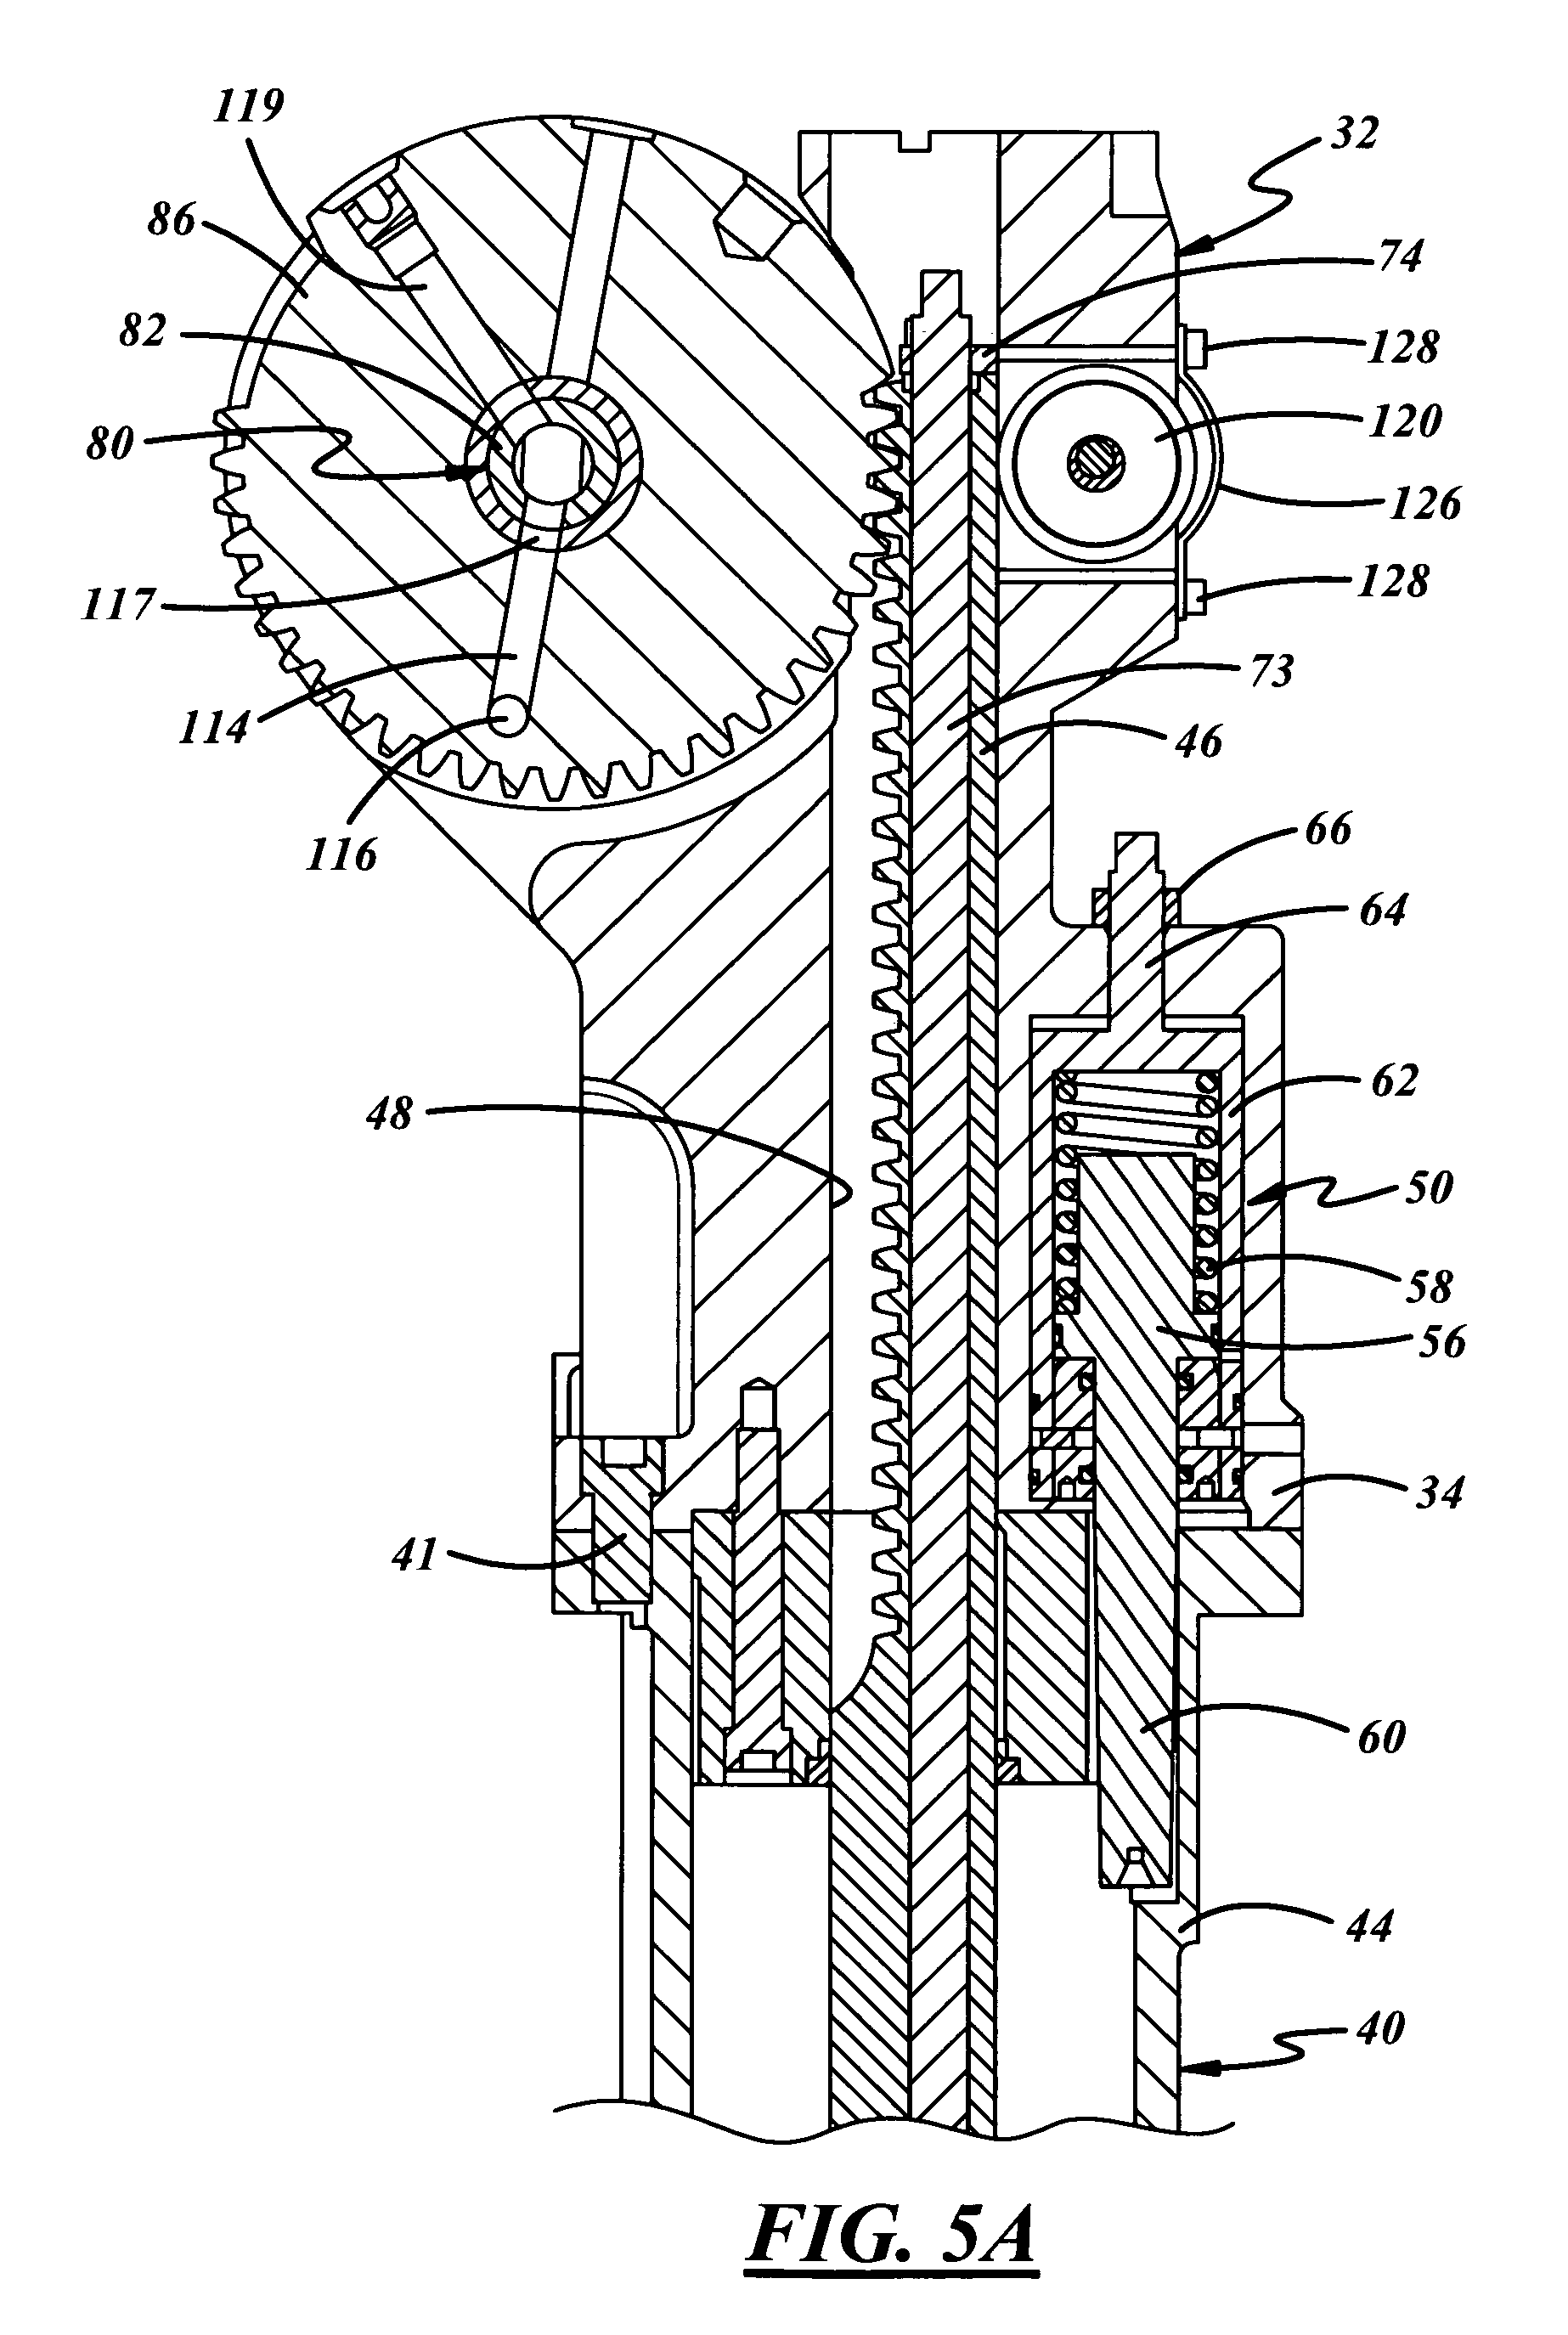 patent us7685842 invert mechanism for a glassware forming